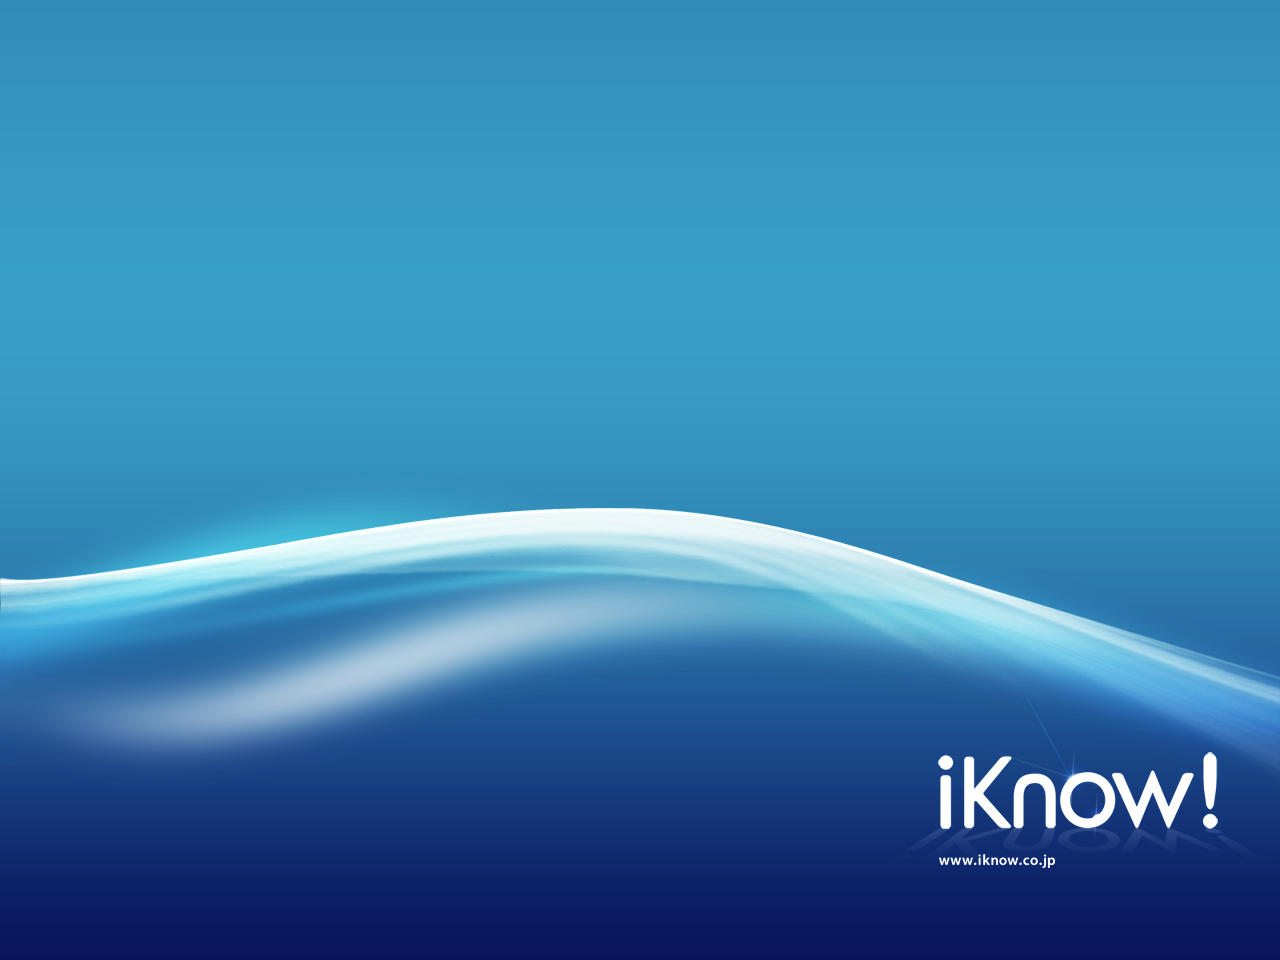 iKnow Wallpaper Pack by Homeryulo